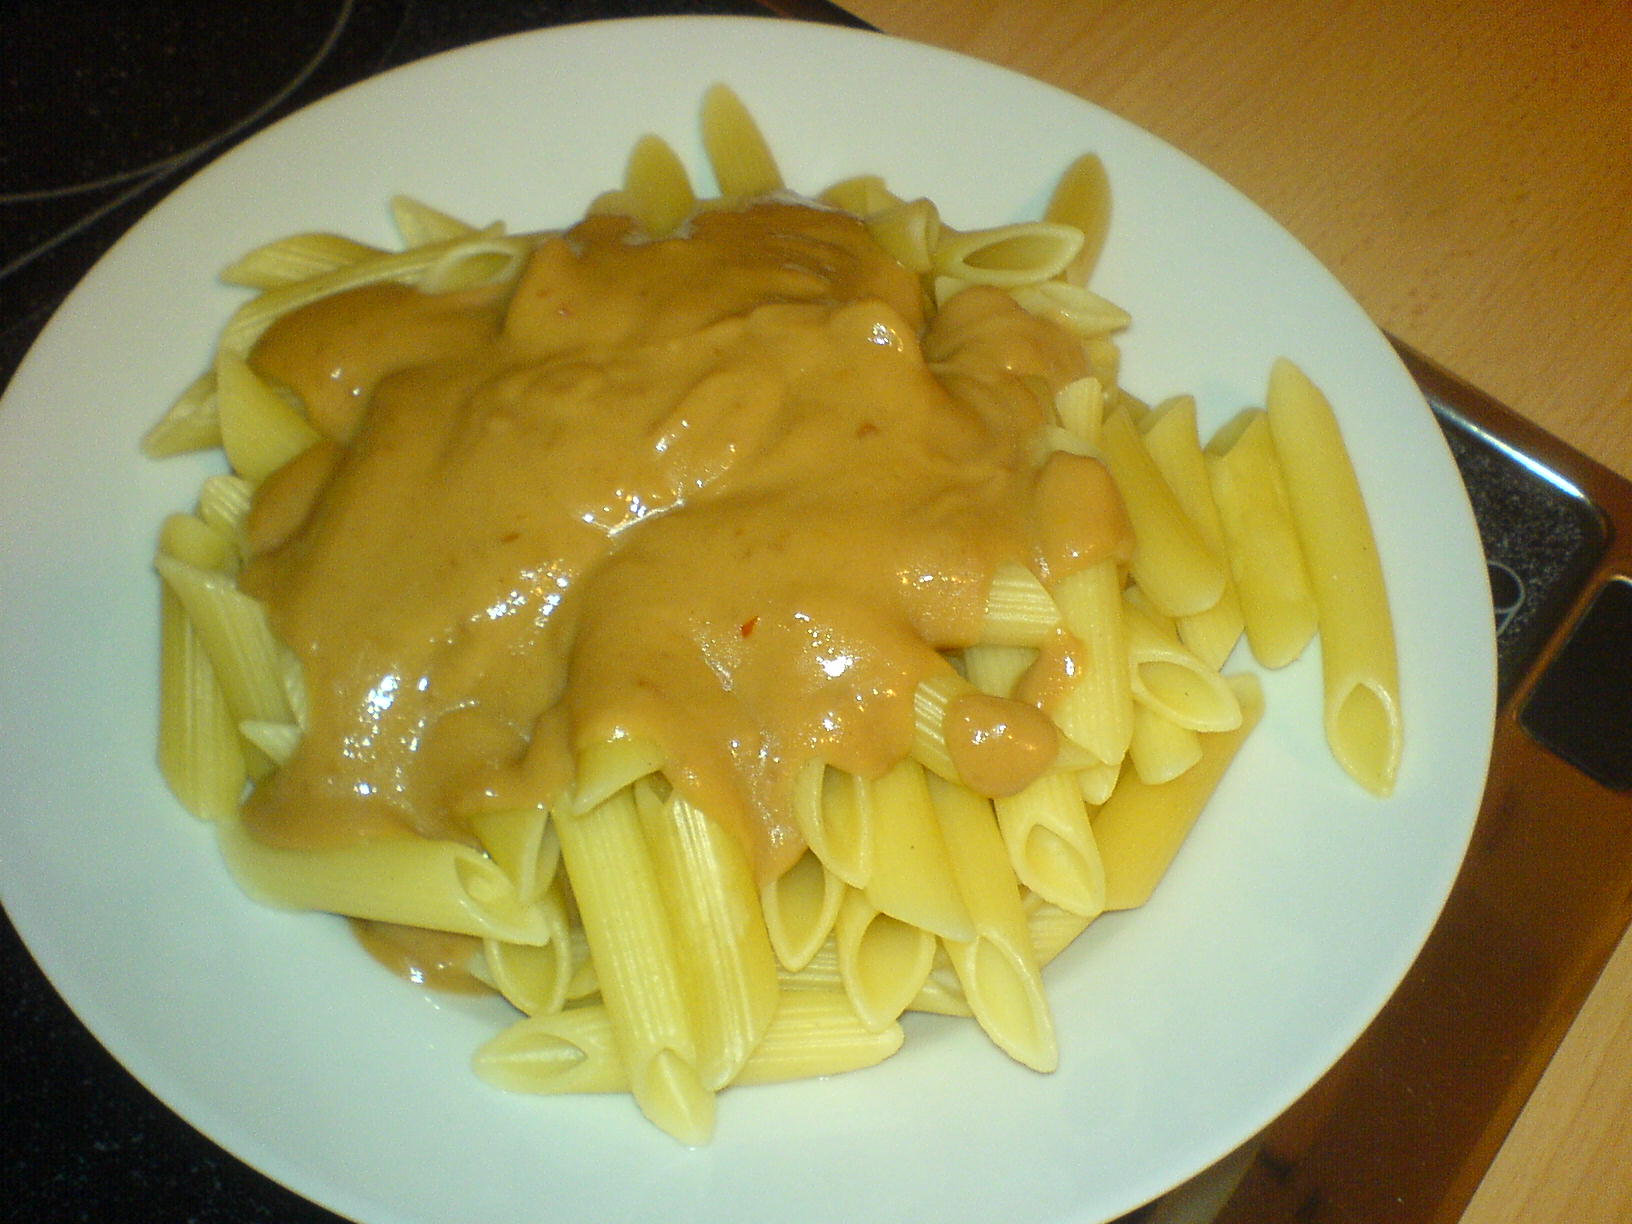 https://foodloader.net/Holz_2009-07-18_Penne_in_Satesauce.jpg